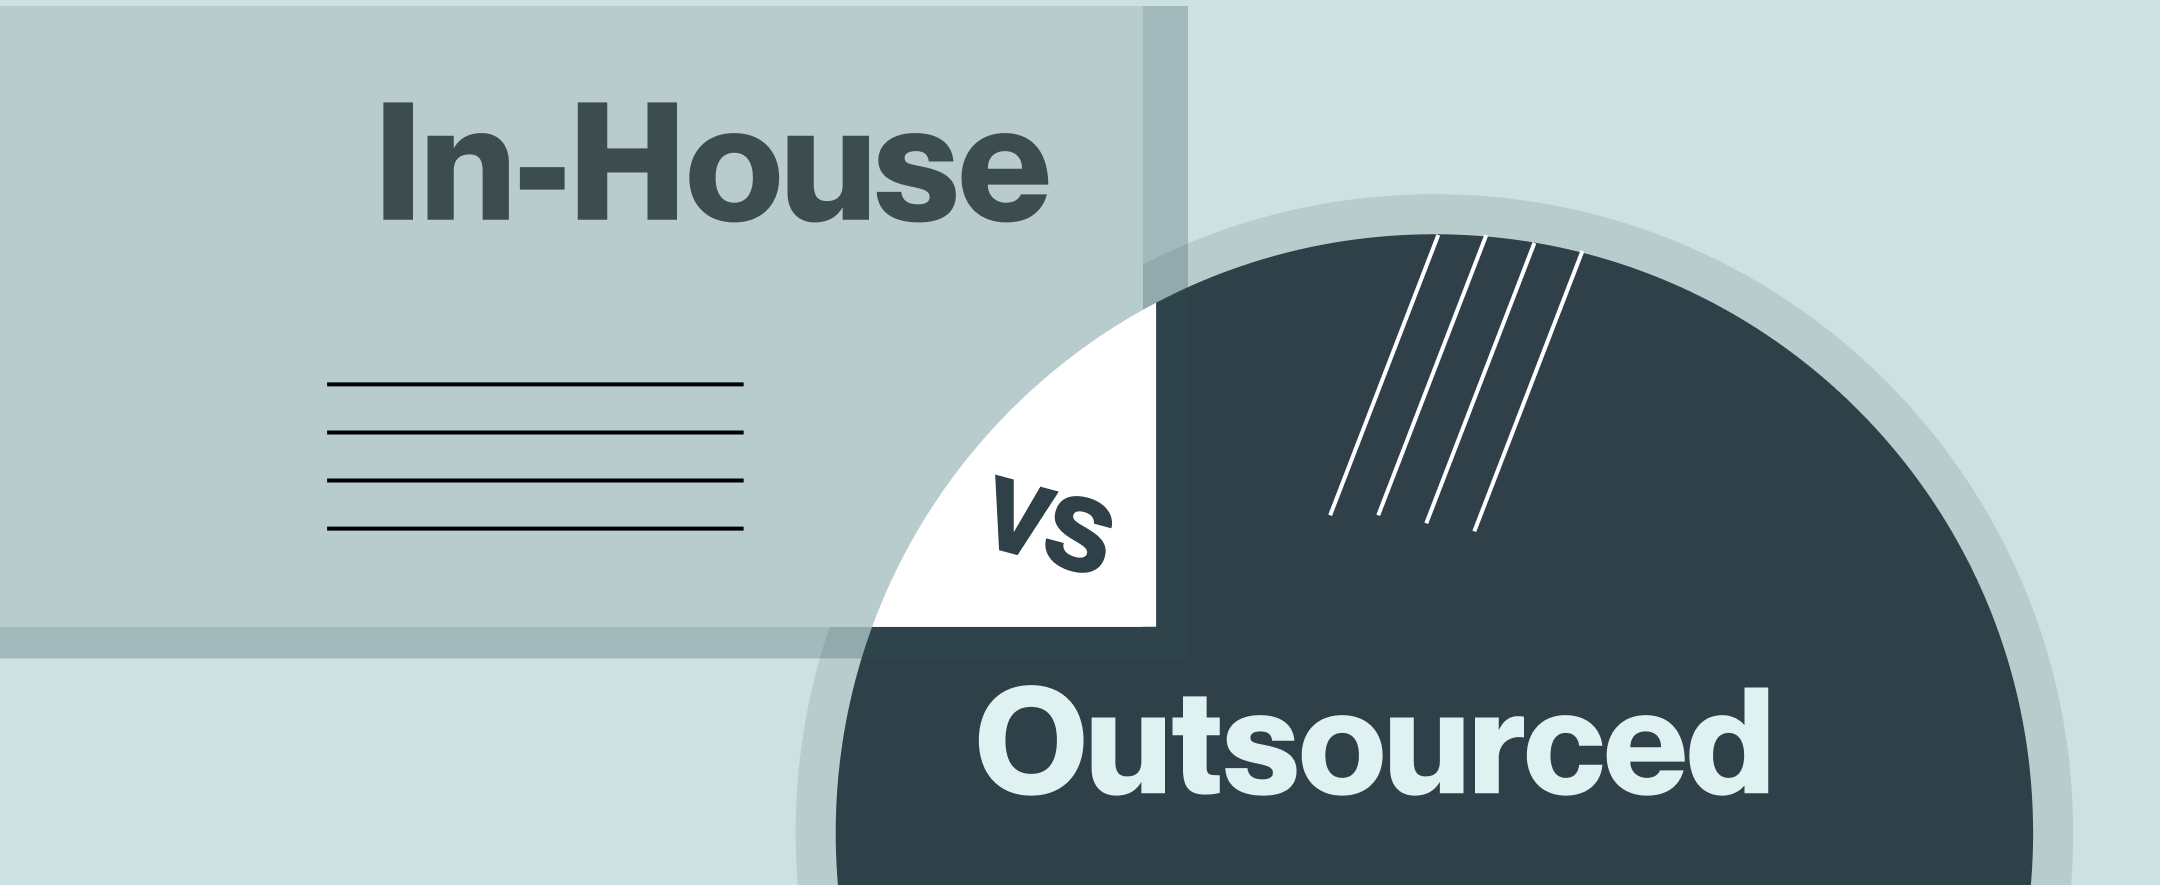 NEW In-House Production vs Outsourcing- Pros & Cons